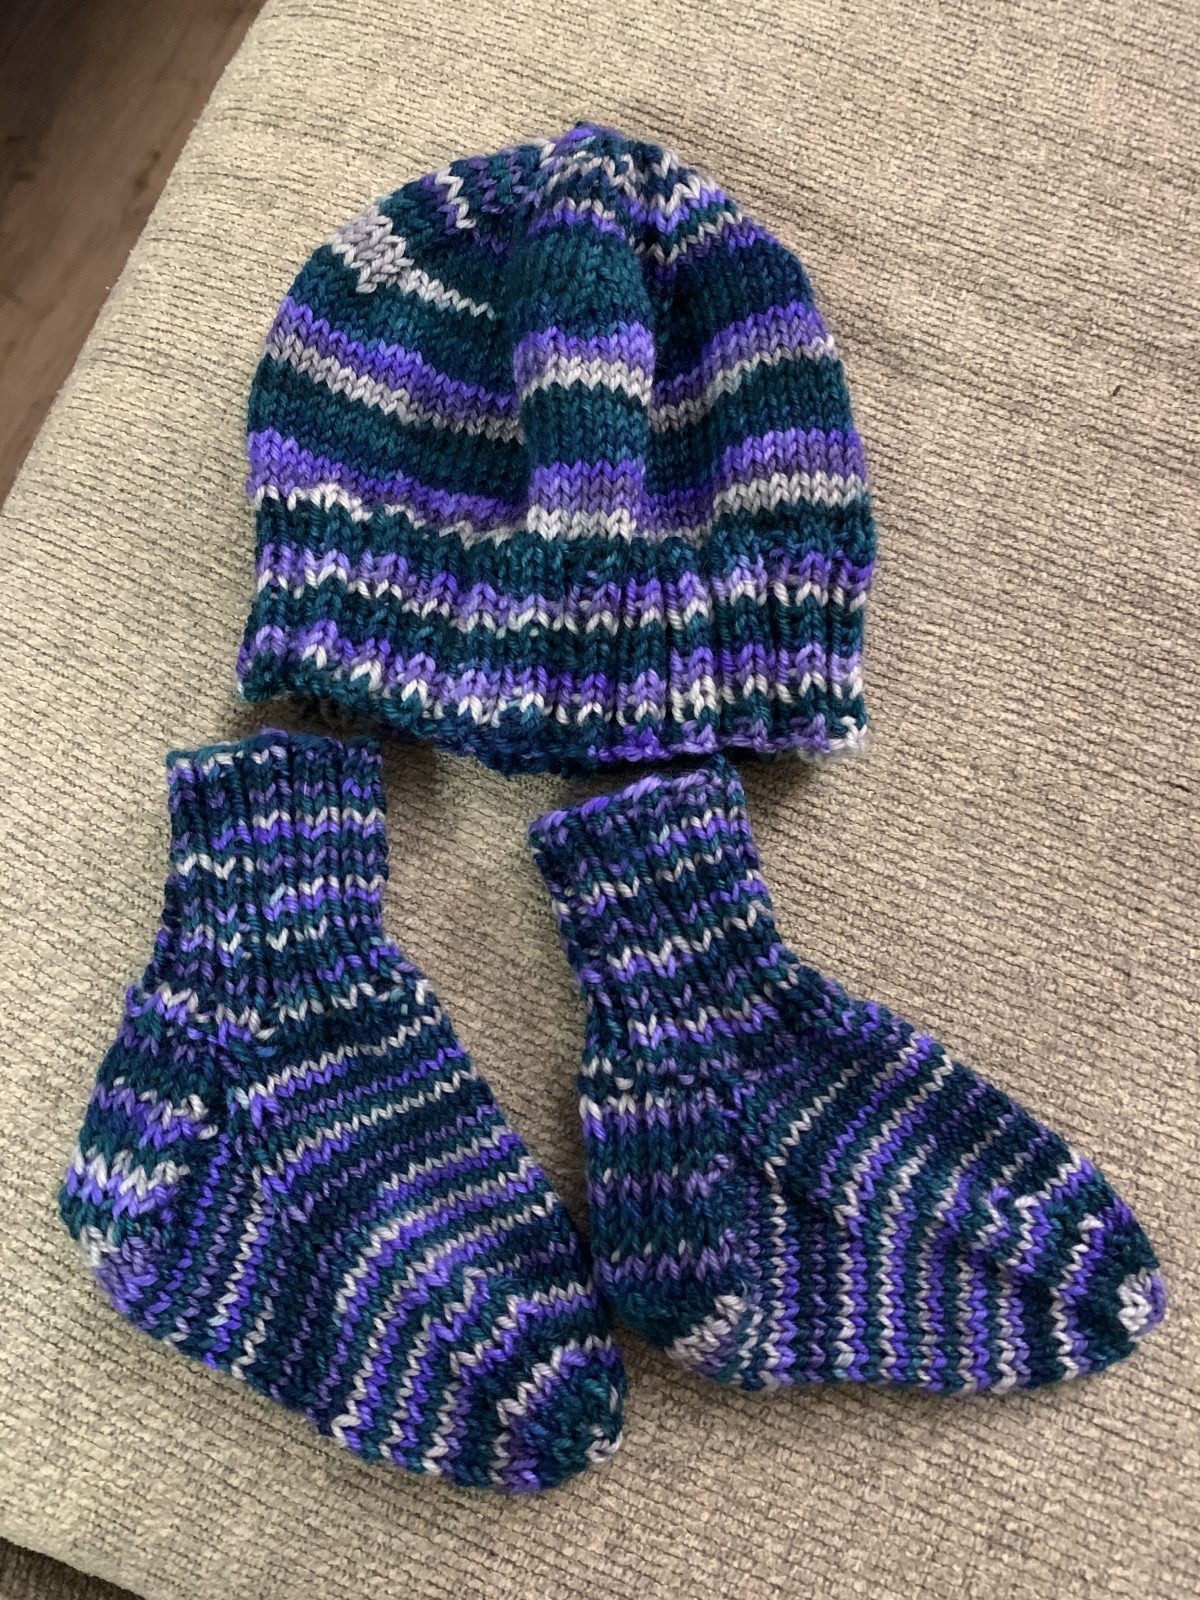 Baby hat and socks in vibrant green, purple, and gray stripes